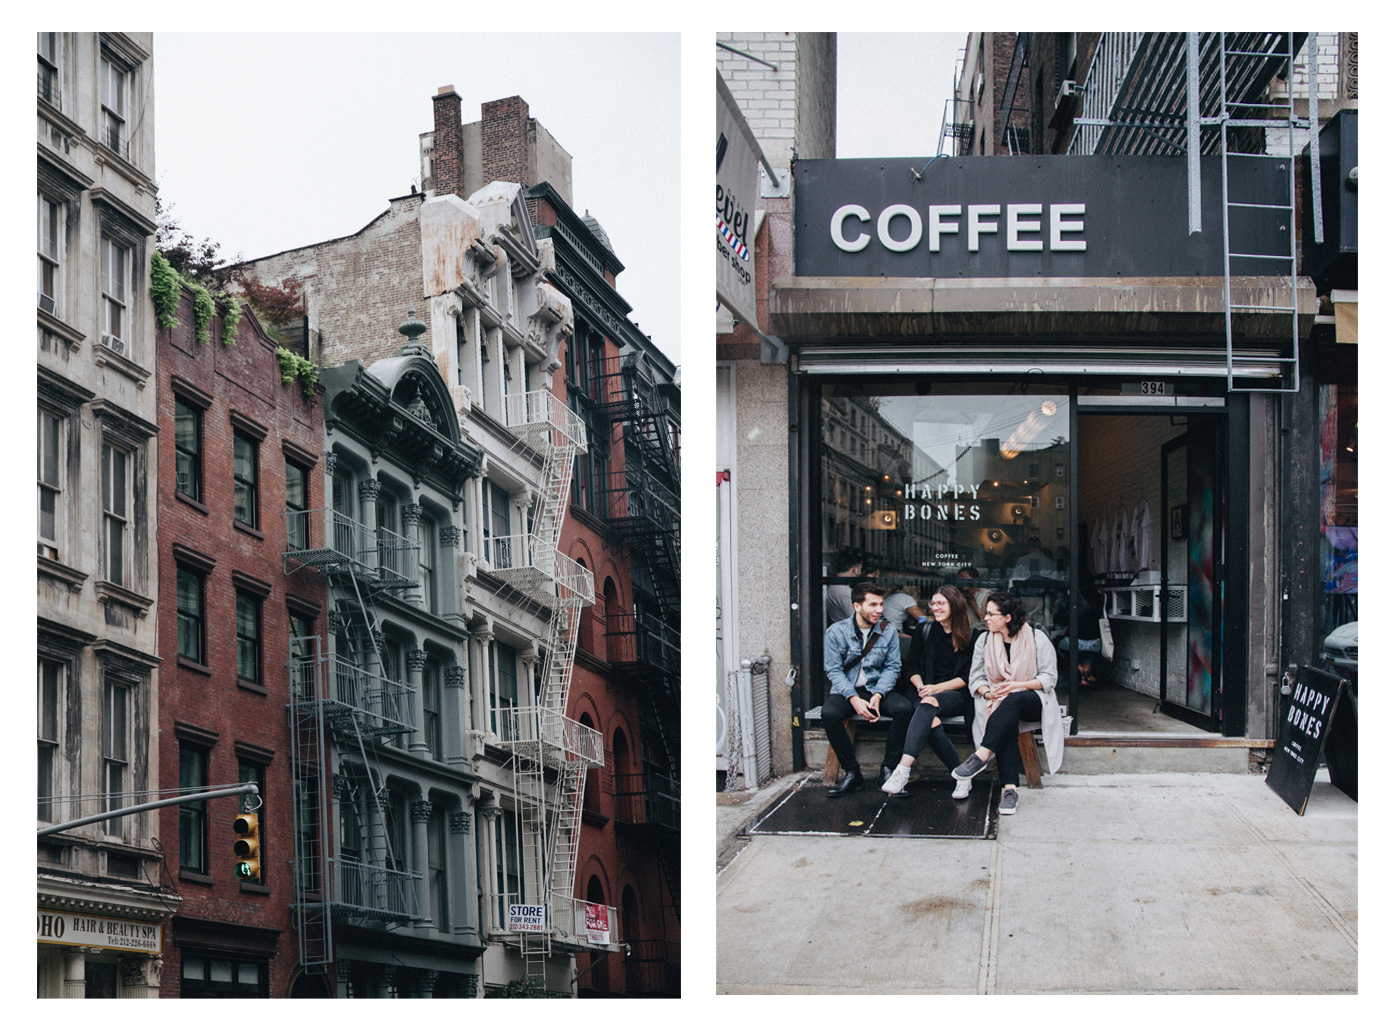 Soho and a nice coffee shop called Happy Bones